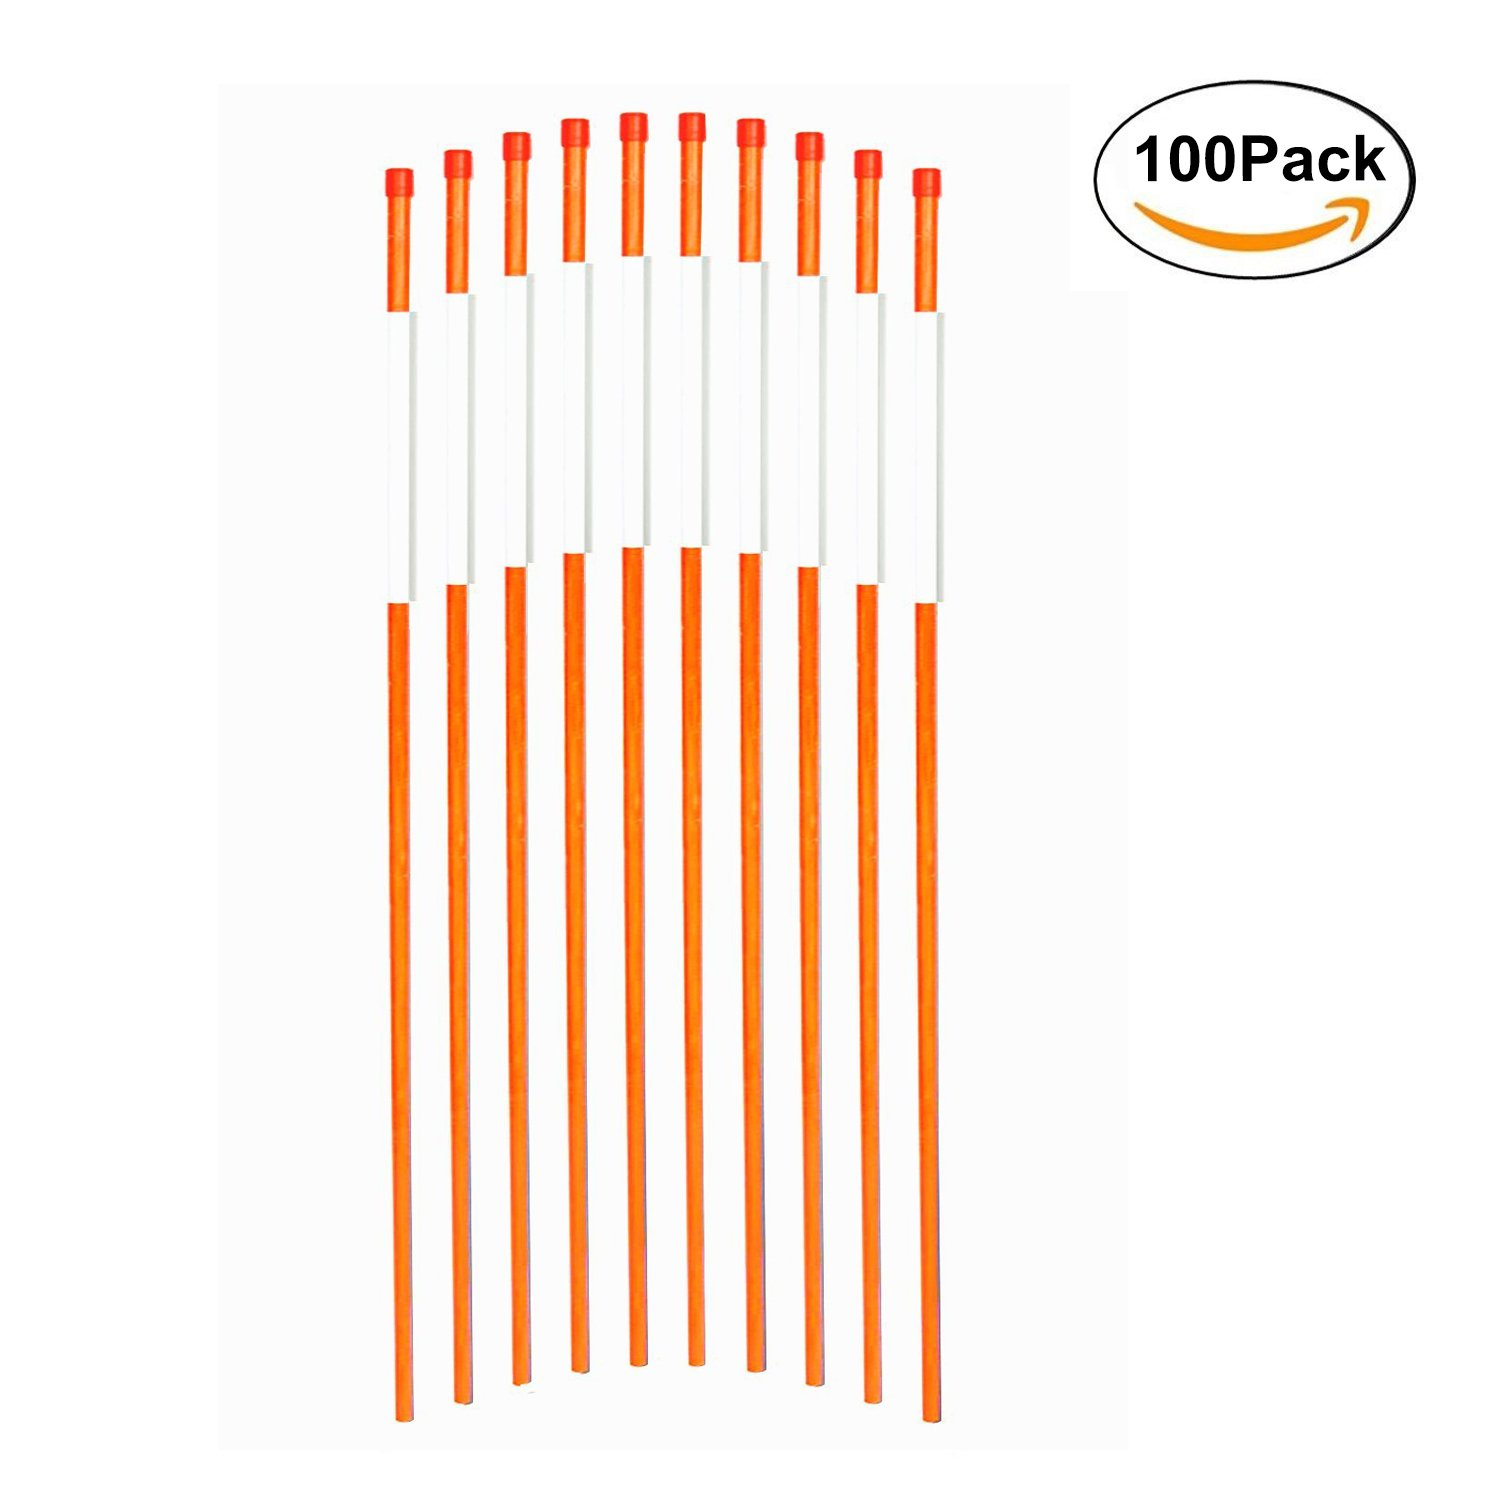 FiberMarker Hollow Driveway Markers 36-Inch 100-pack Orange 5/16-Inch Dia Driveway Poles for Easy Visibility at Night